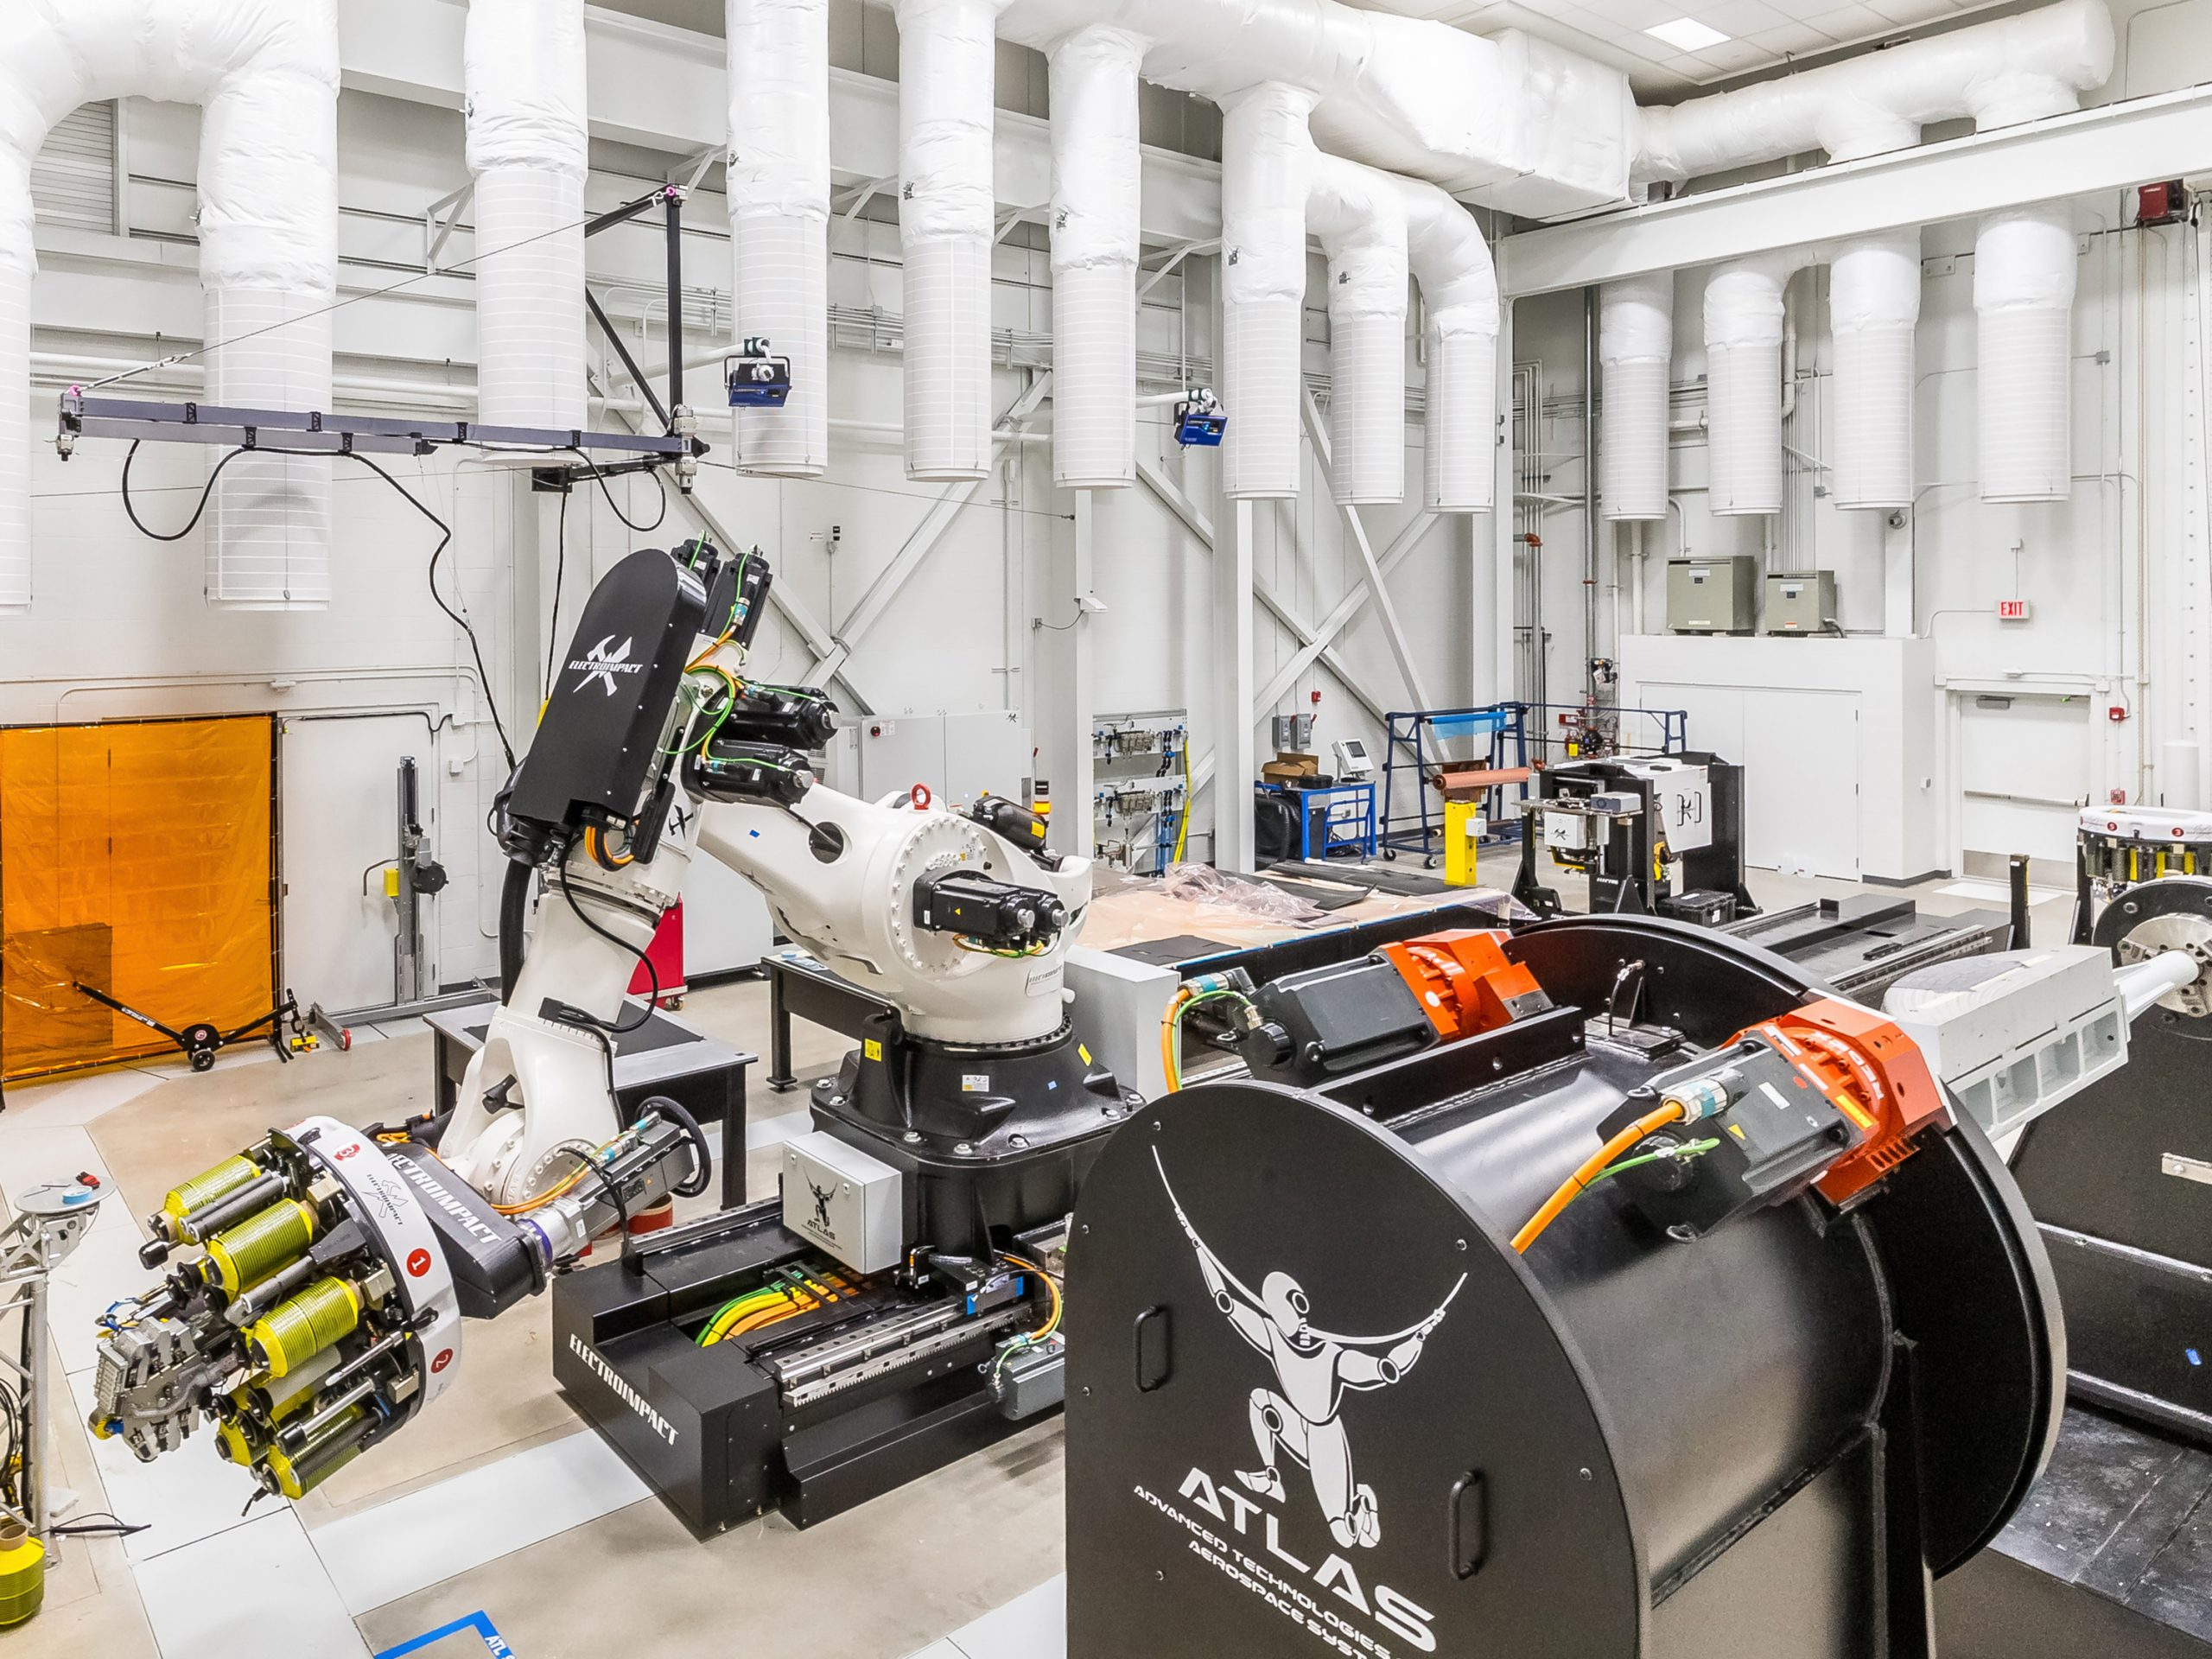 Advanced Technologies Lab for Aerospace Systems (ATLAS) is part of Wichita State's National Institute for Aviation Research (NIAR).